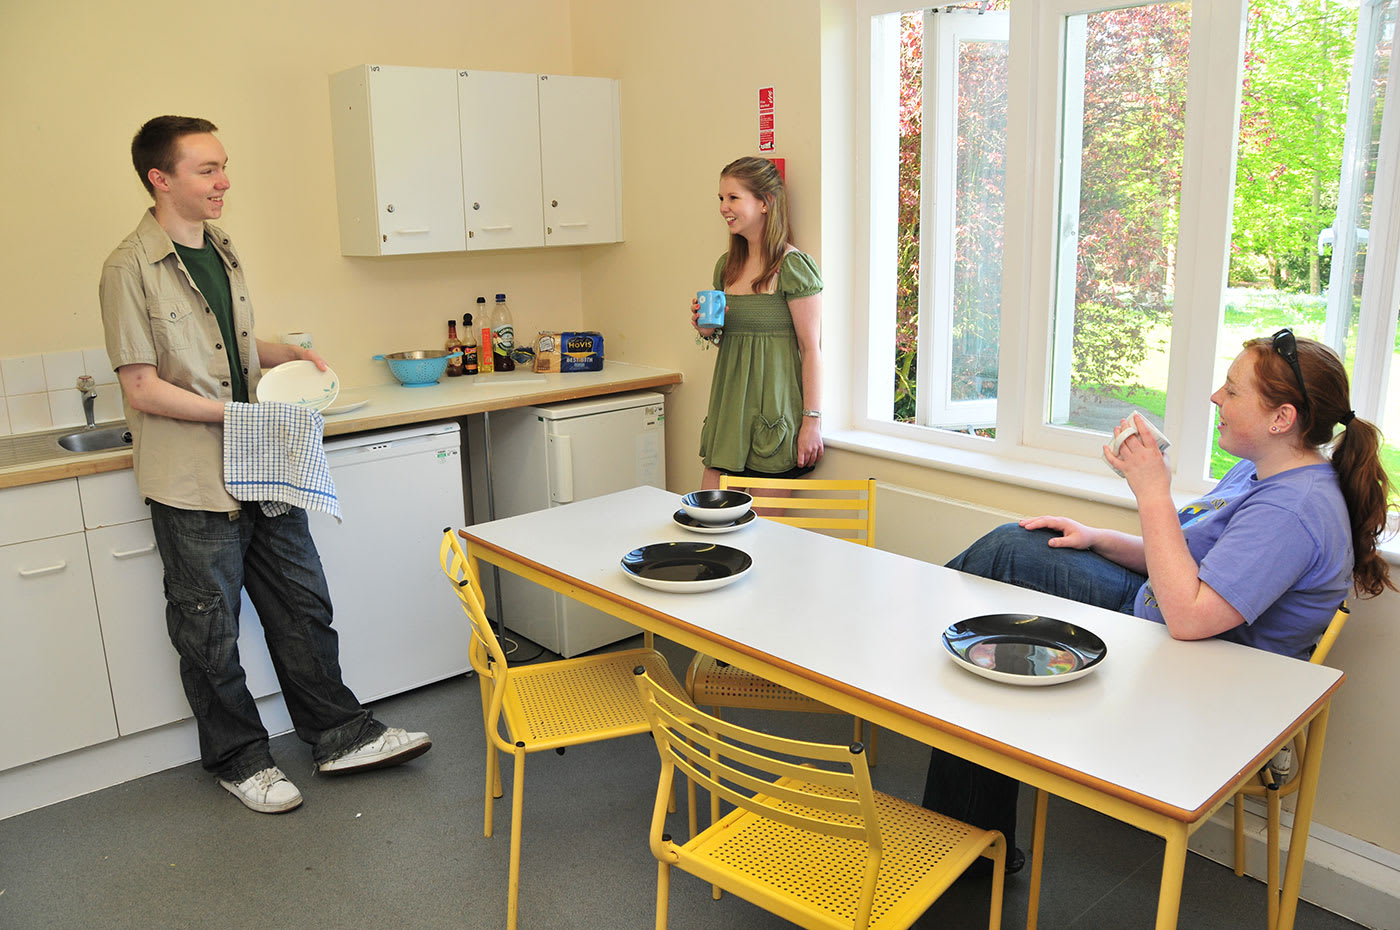 Make dinner with friends in the communal kitchen